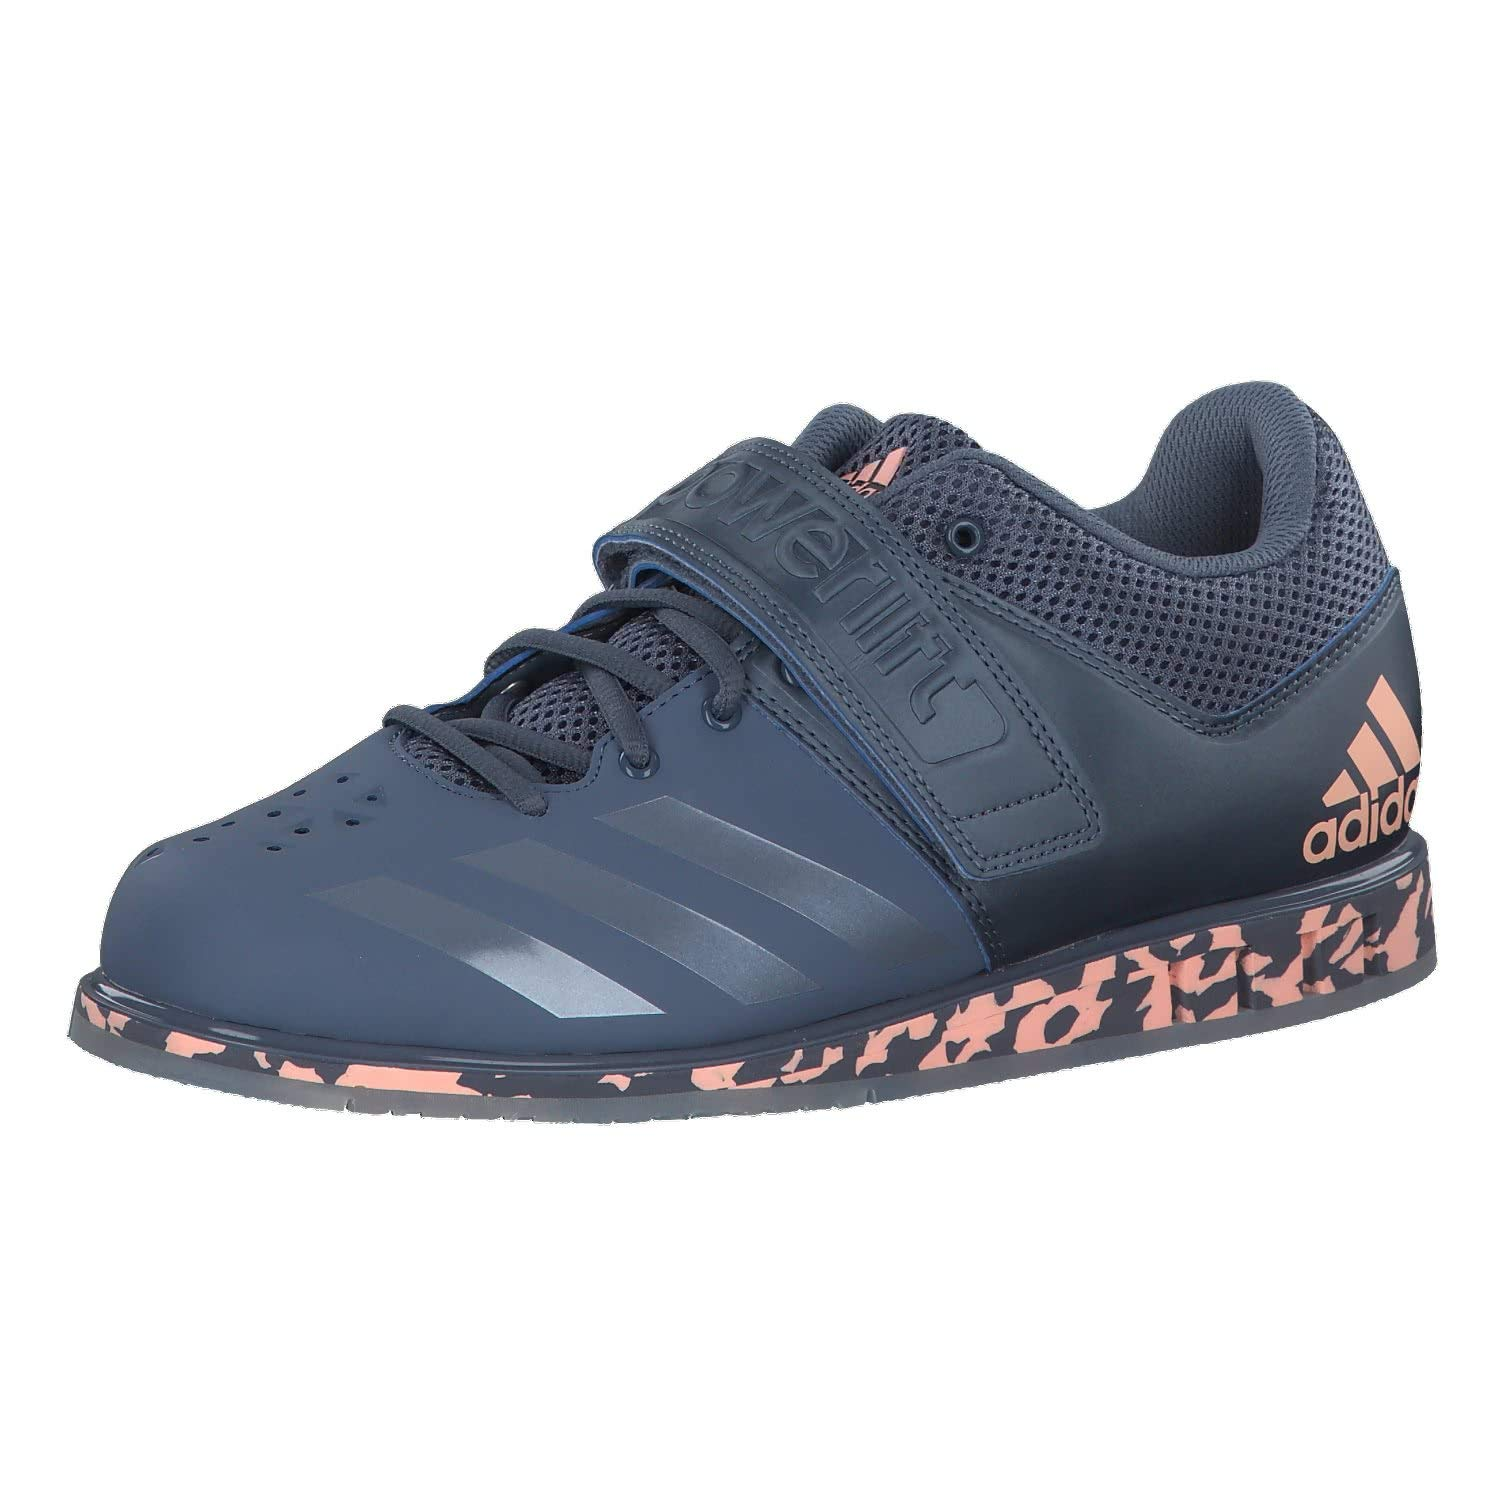 Details about Adidas Powerlift 3.1 Mens Blue Weight Lifting Shoes Gym  Trainers - 5 UK a11112405d6a